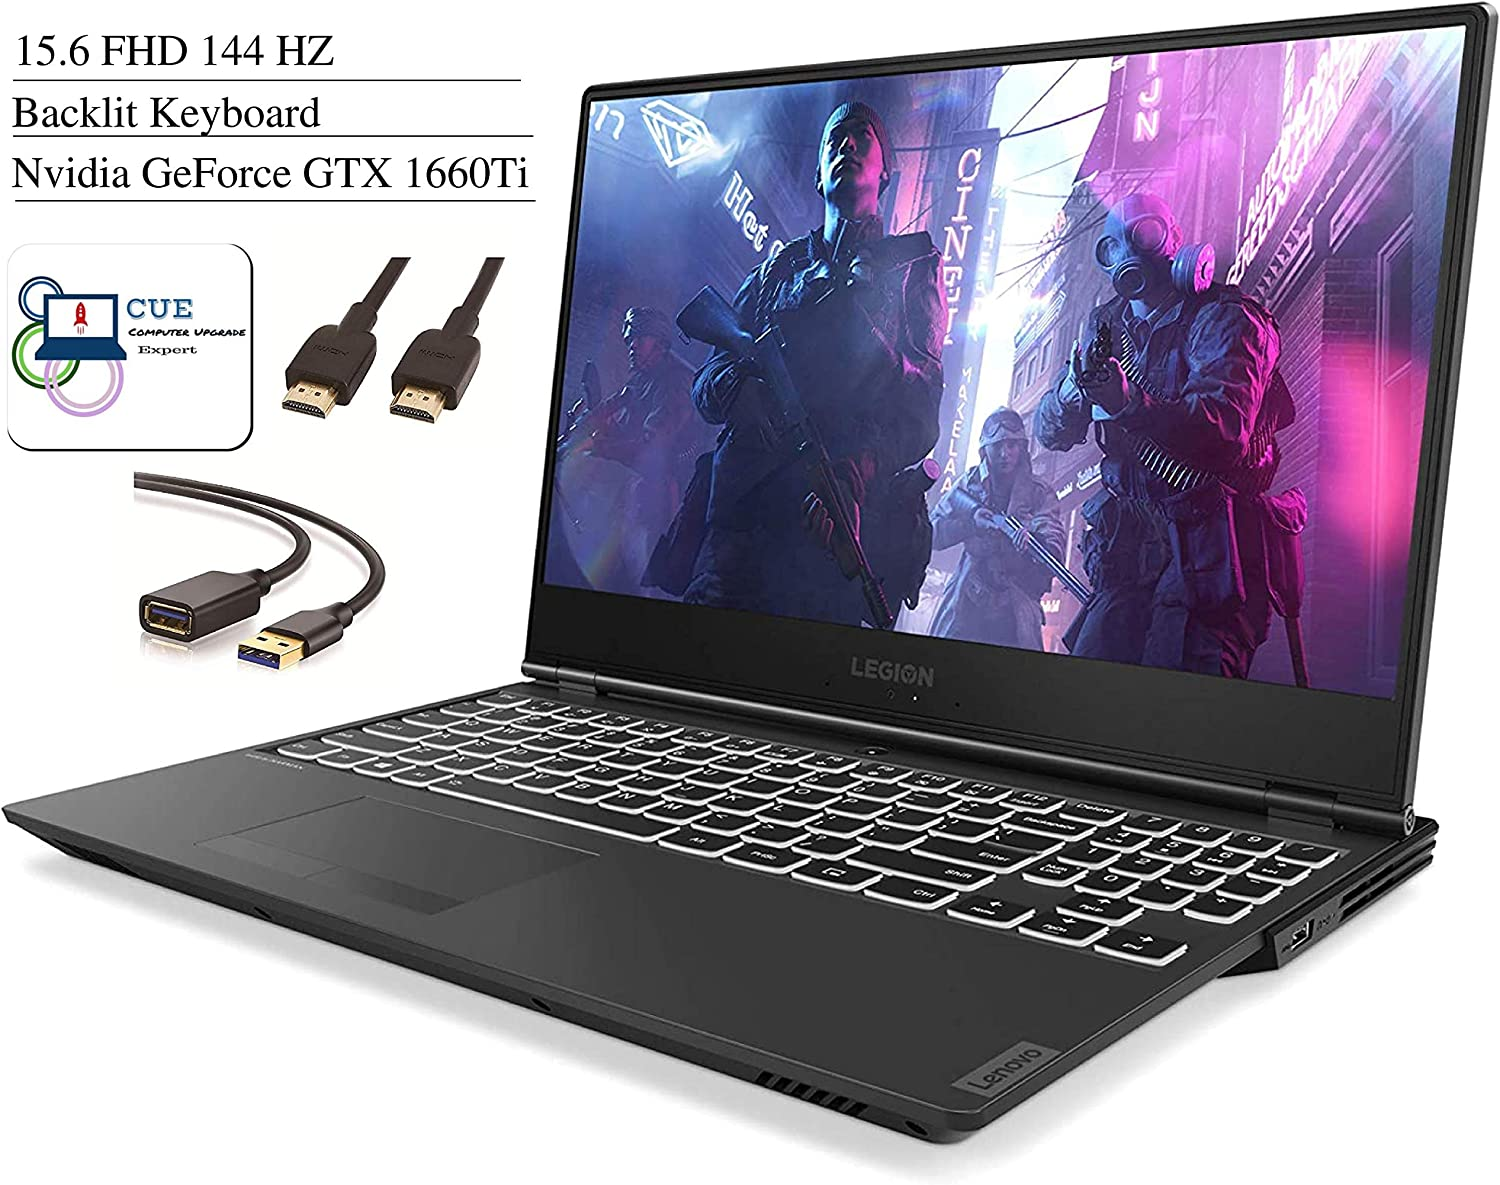 Lenovo Legion Y540 15.6 FHD 1080P 144Hz IPS Gaming Laptop Intel 6-Core i7-9750H, 16GB DDR4 RAM, 256GB SSD, NVIDIA GeForce GTX 1660Ti, Bluetooth, WiFi, HDMI, Win10 + CUE Accessories